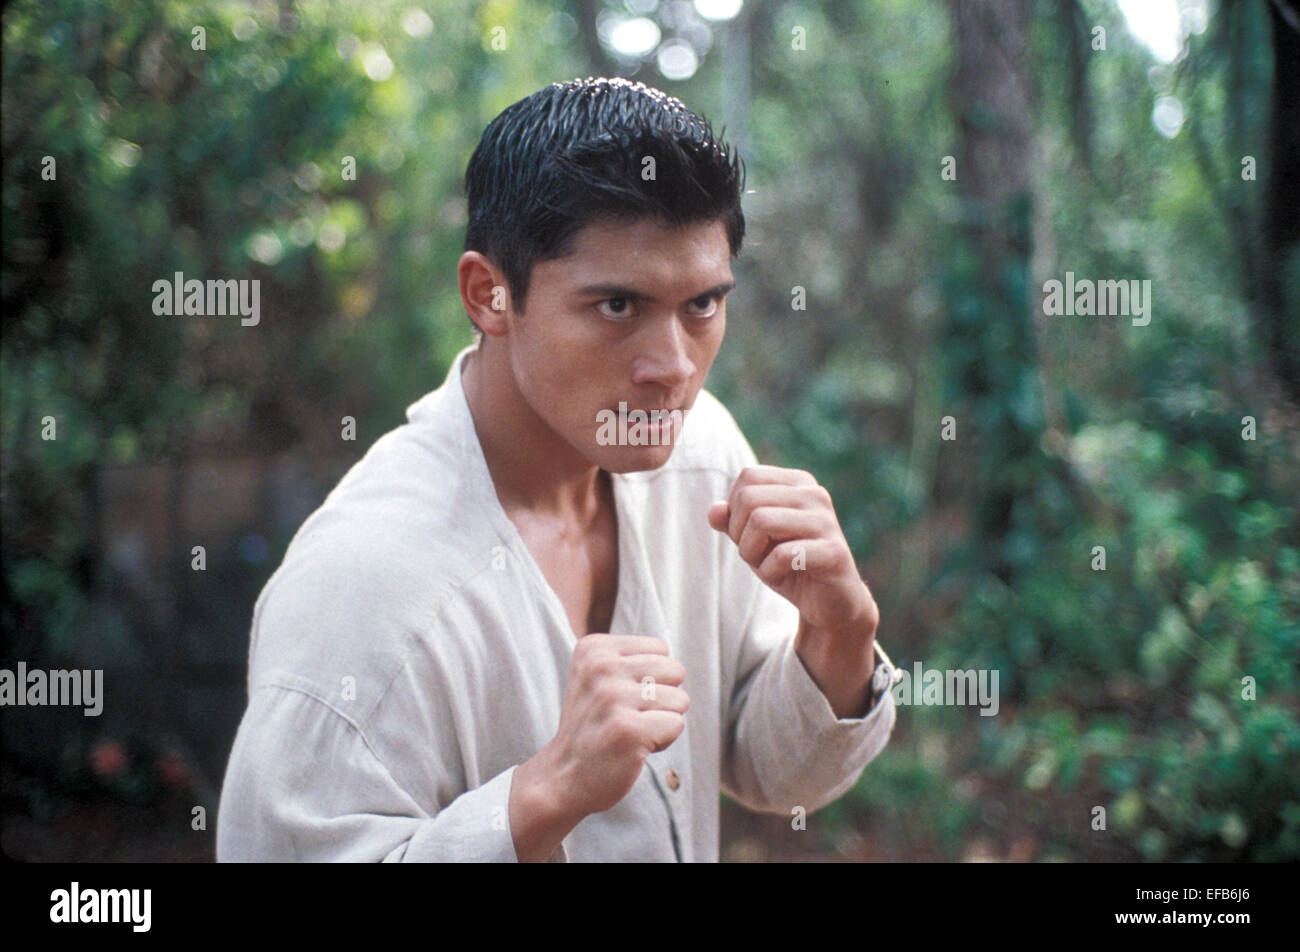 paolo montalban mortal kombat conquest 1998 stock photo